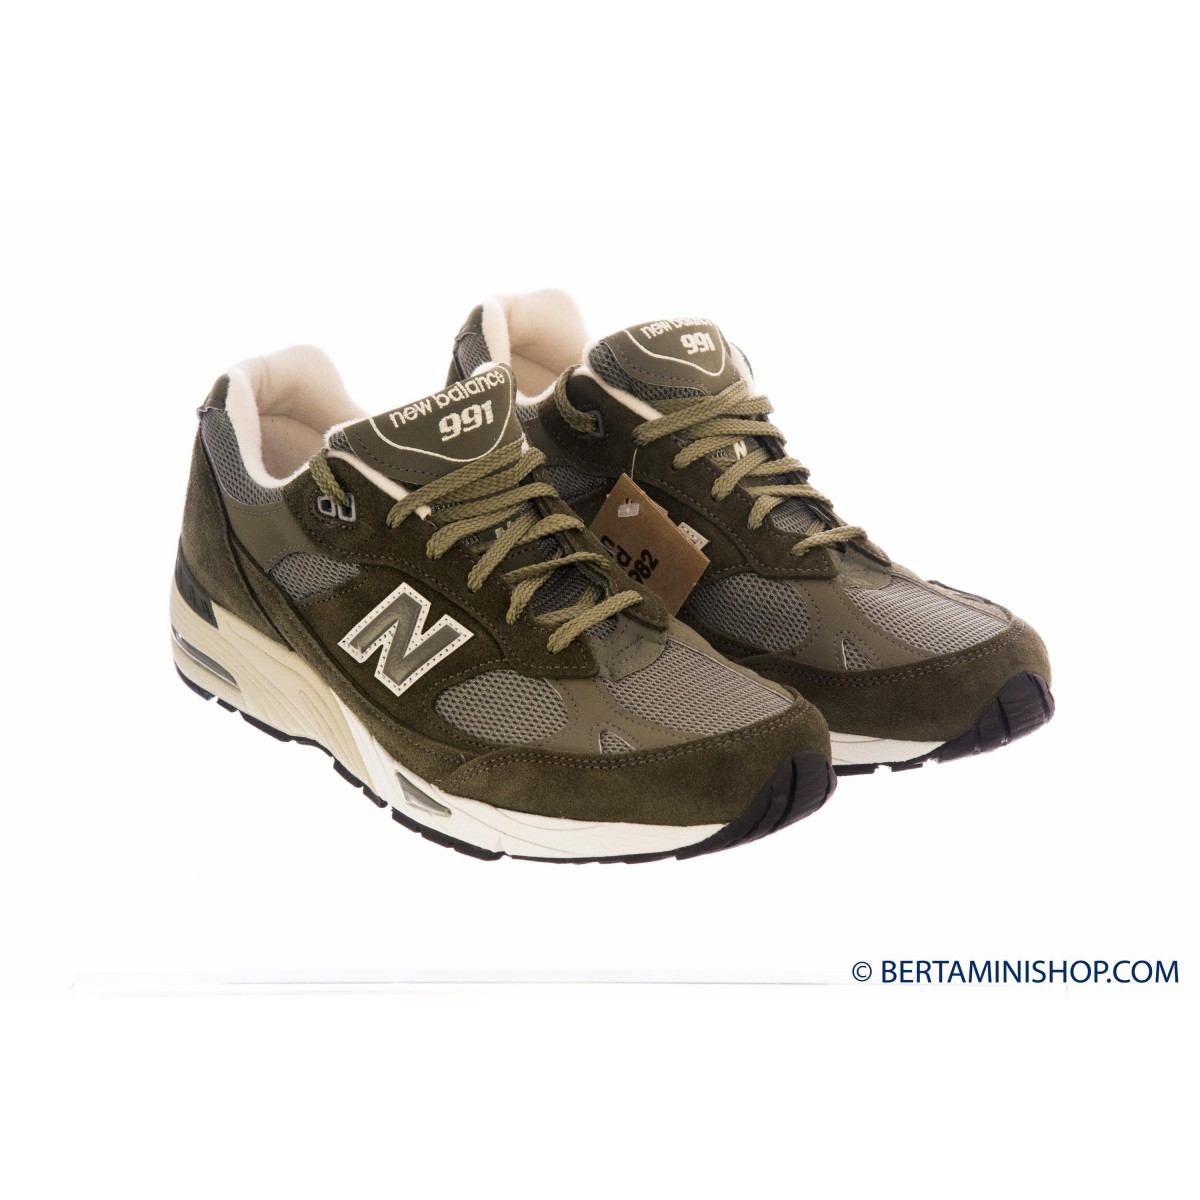 Scarpa New Balance Uomo - M991 Made In Uk Originals